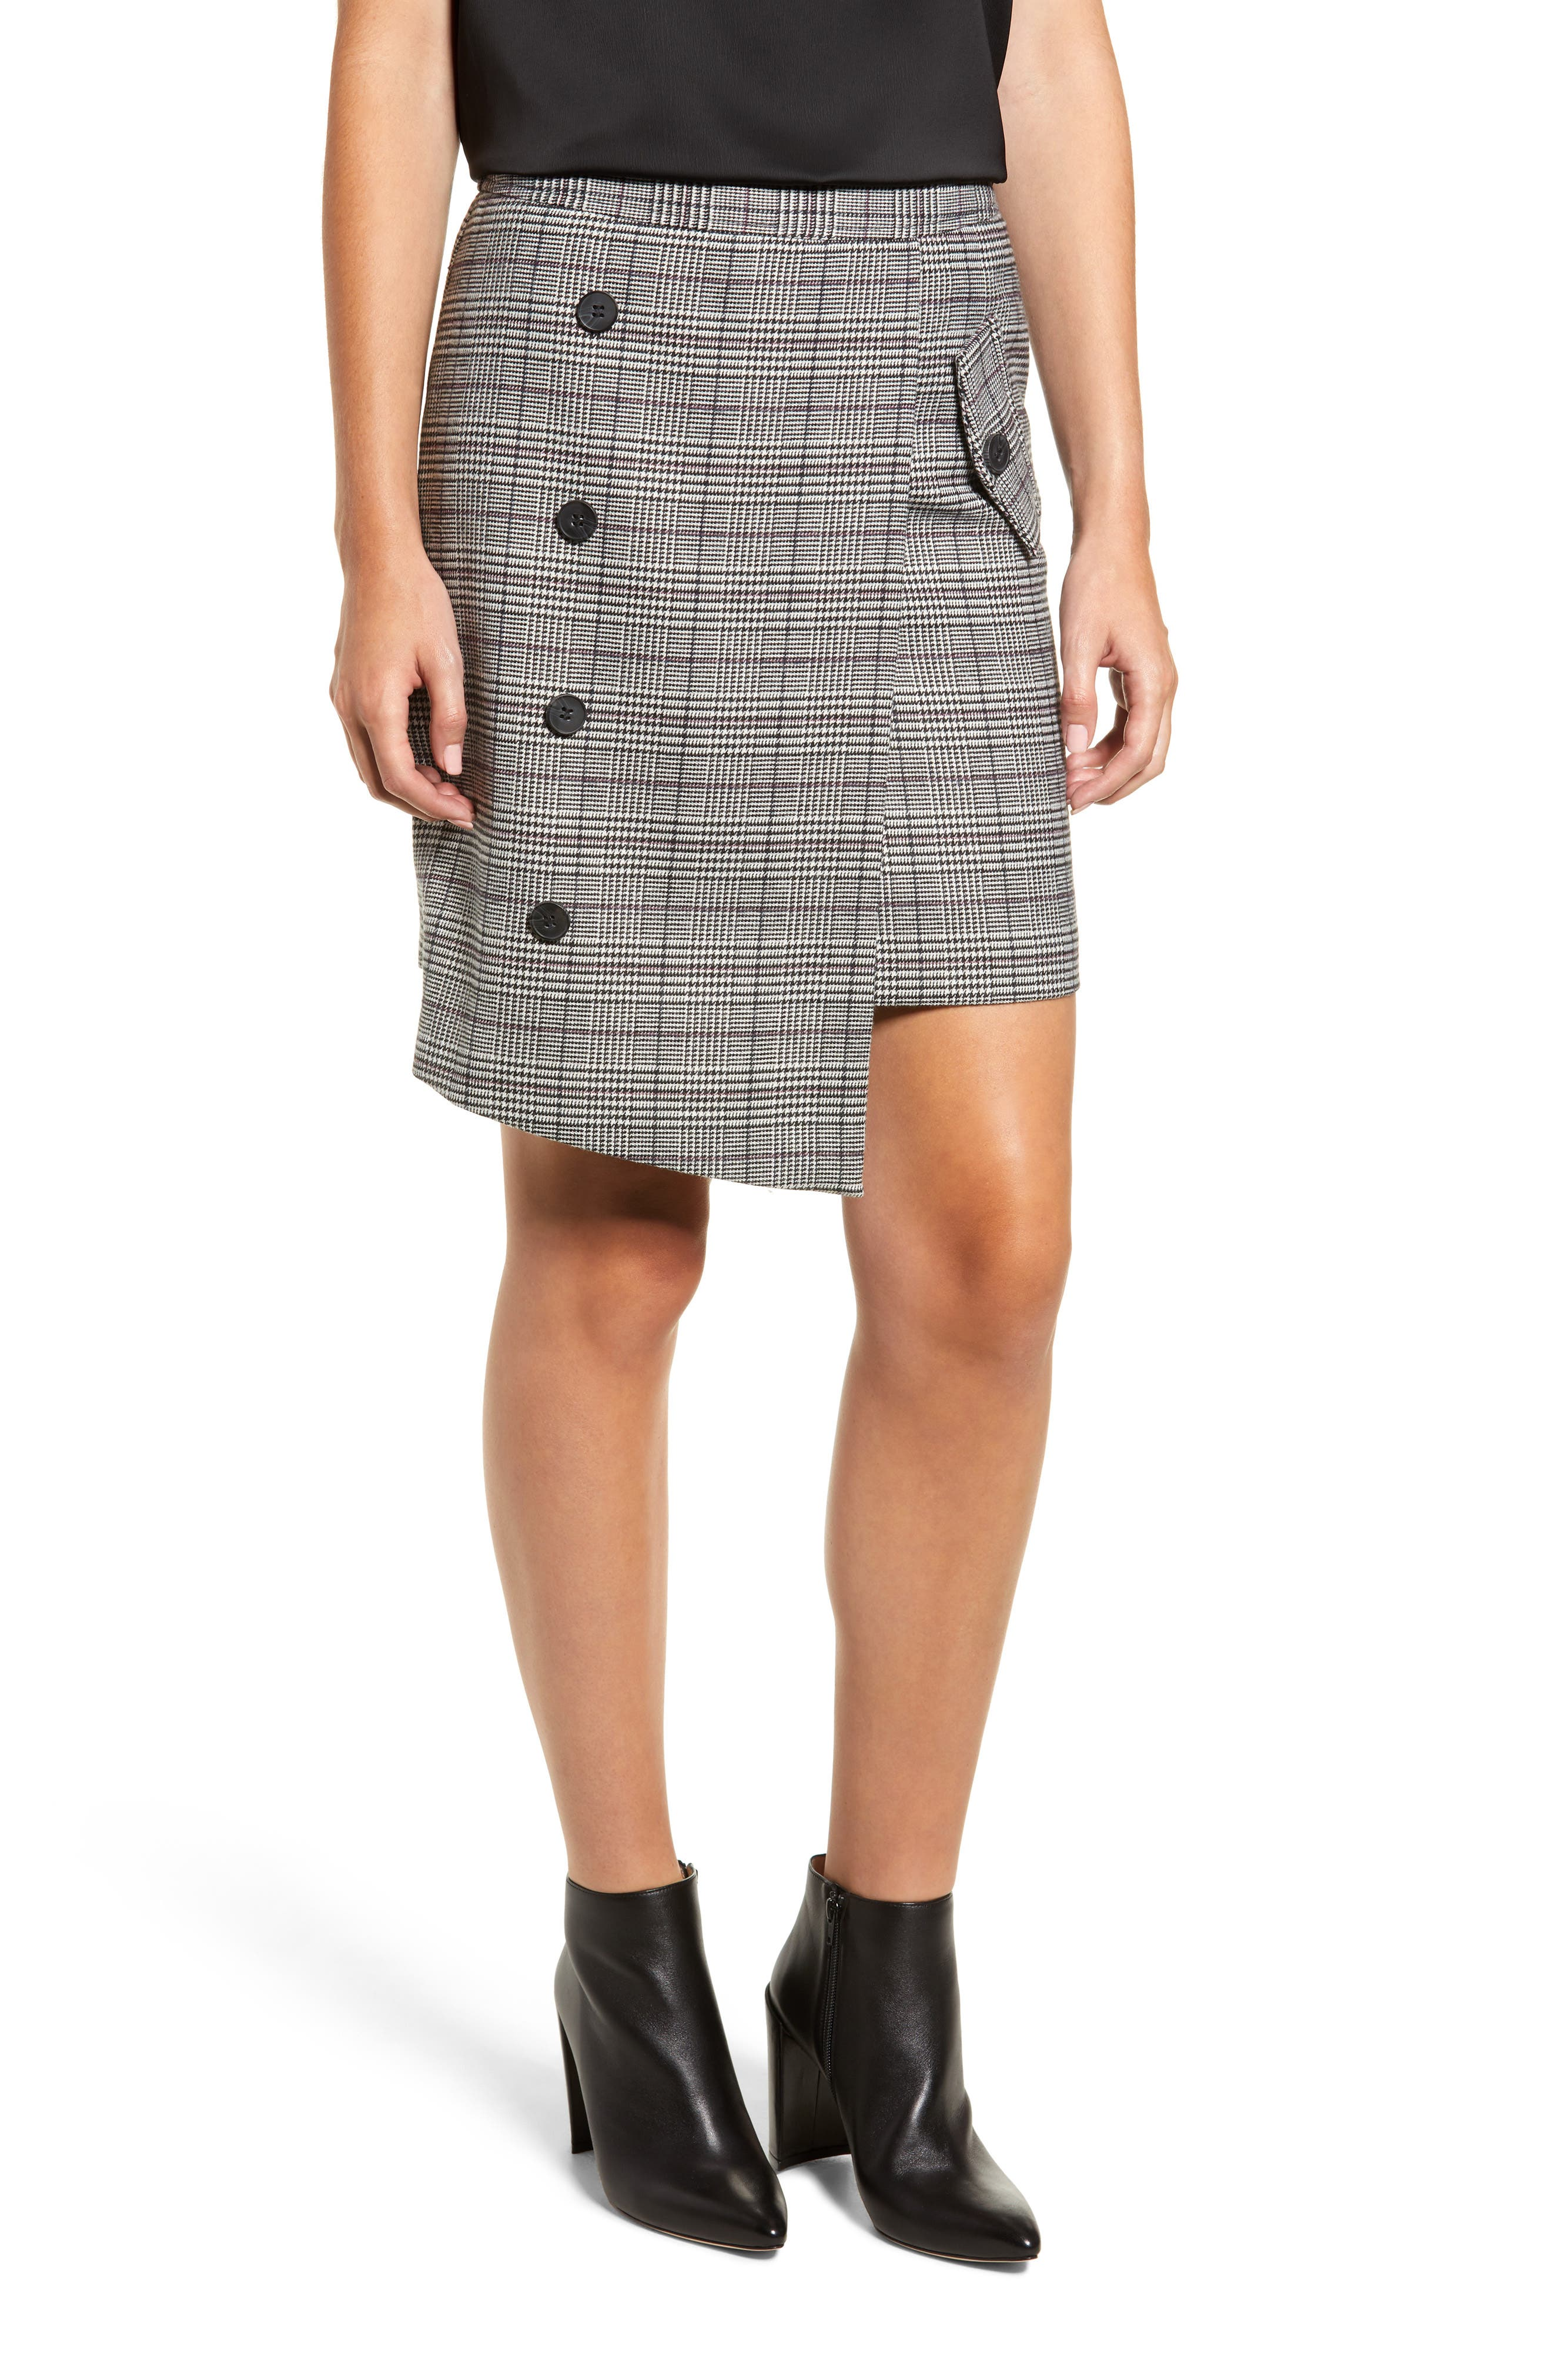 Chriselle Lim Bianca Houndstooth Button Front Skirt,                             Main thumbnail 1, color,                             GREY PLAID